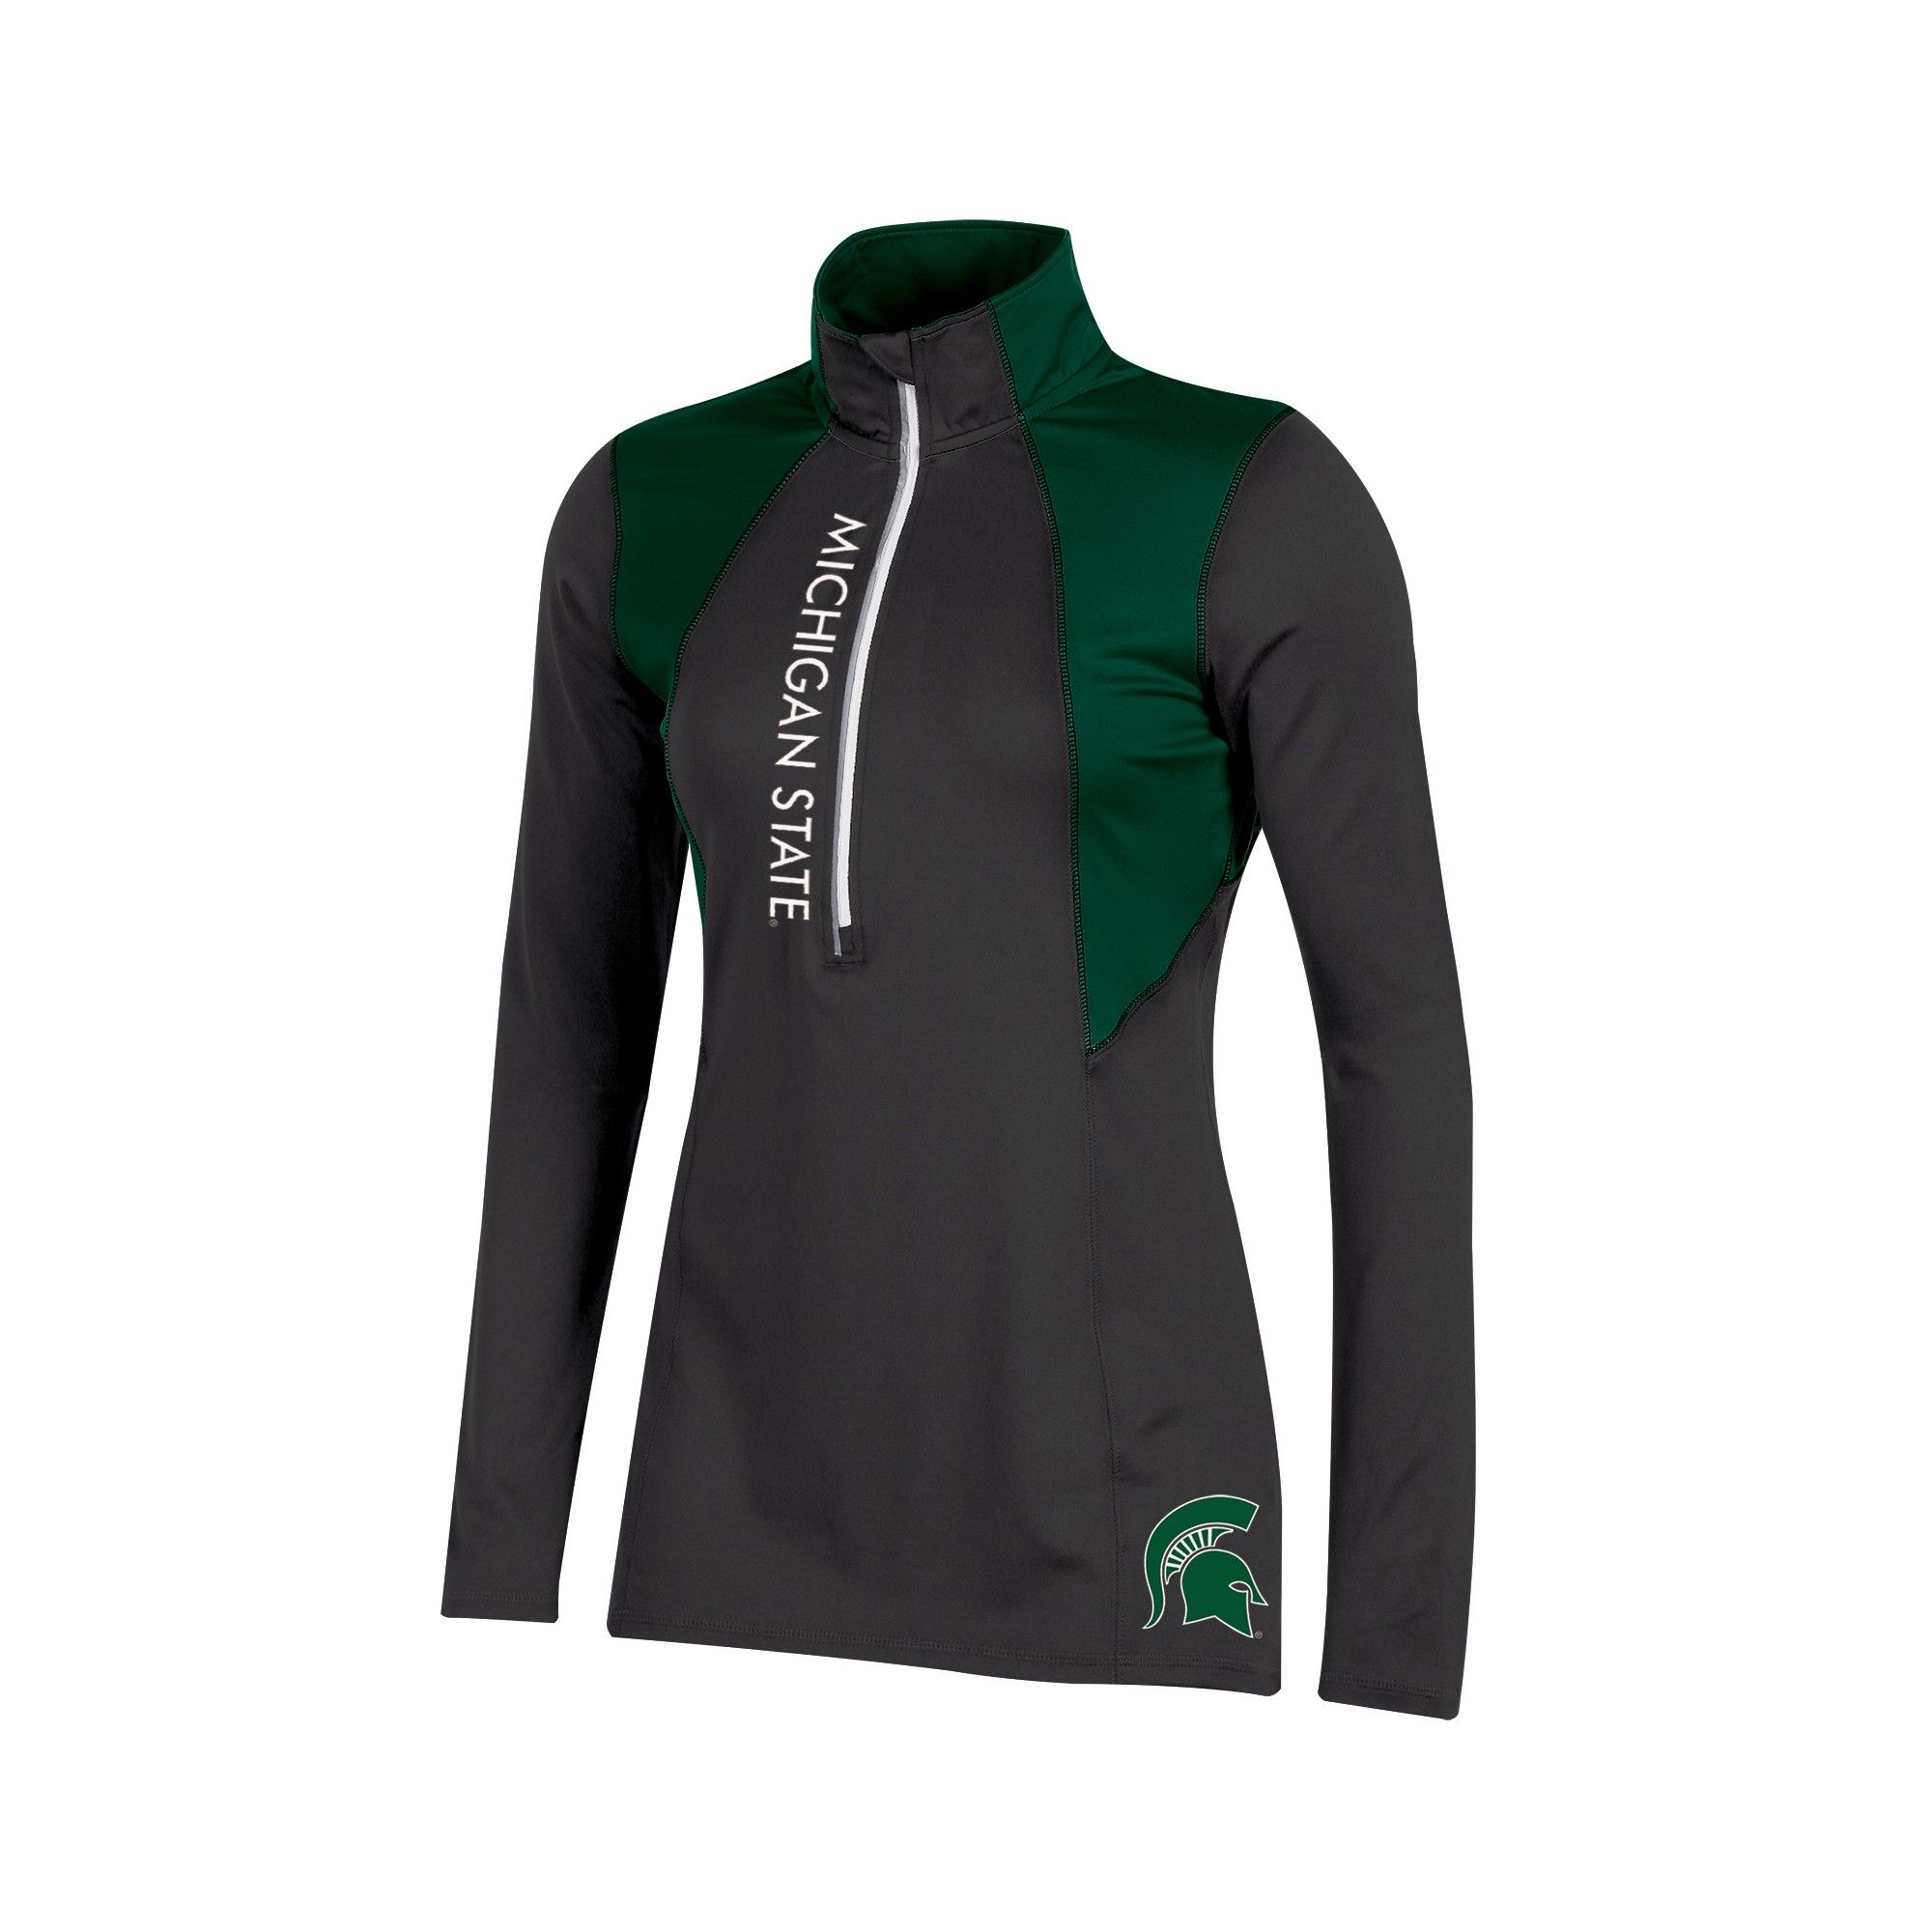 Michigan State Spartans Women's Long Sleeve 1/2 Zip